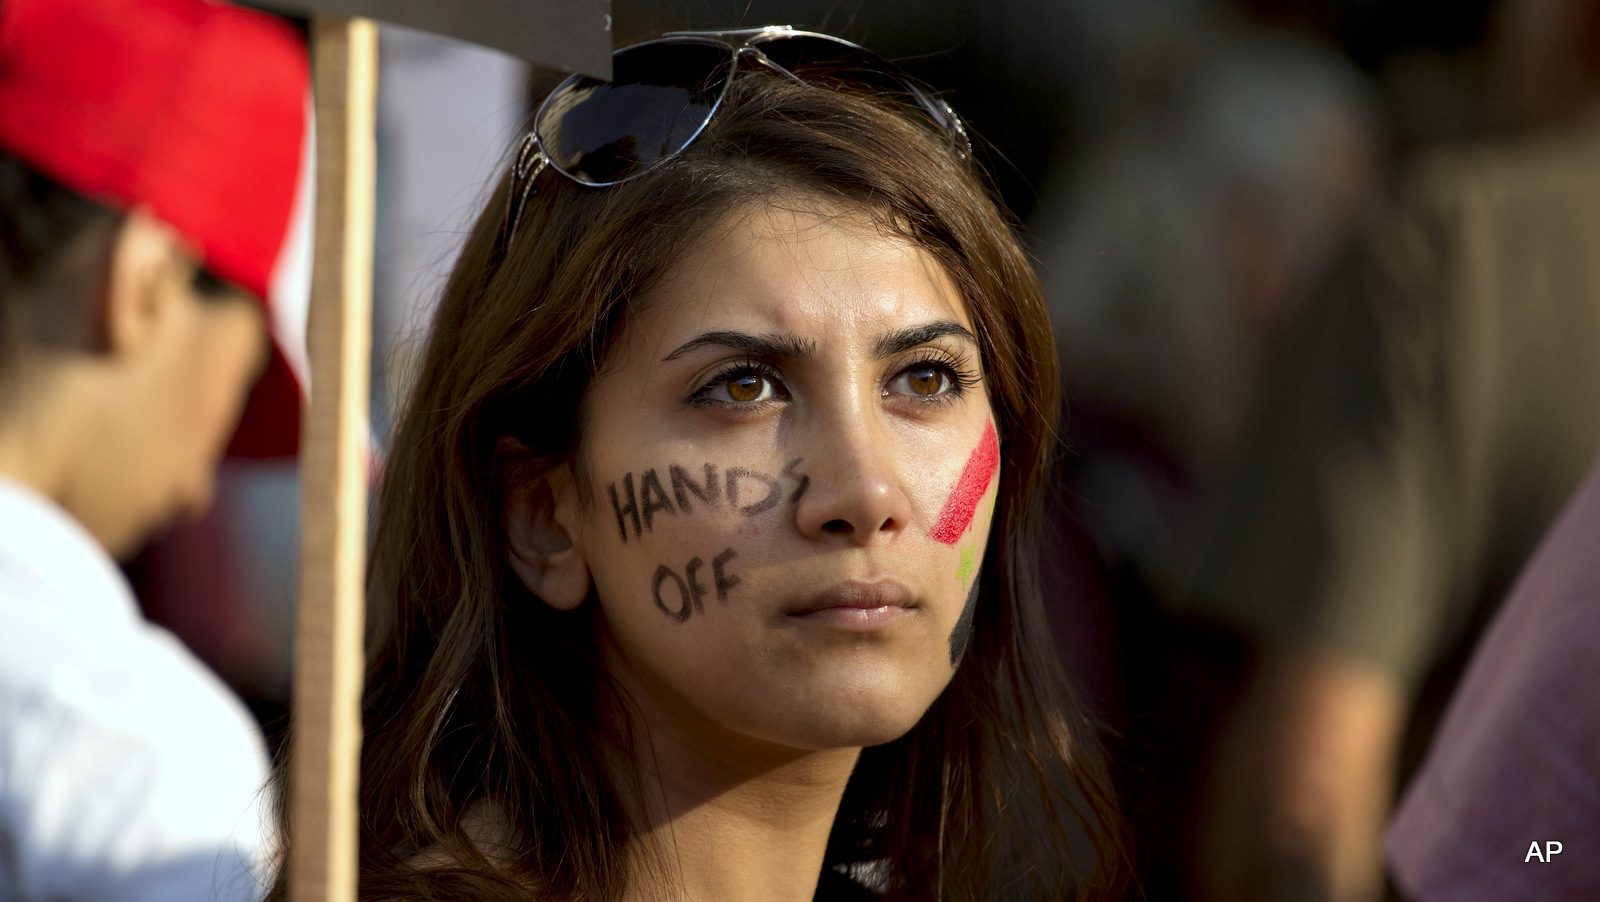 "A Syrian woman with the words ""hands off"" painted on her face takes part in a protest against US military action in Syria across the road from the entrance of Downing Street in London, Aug. 28, 2013."